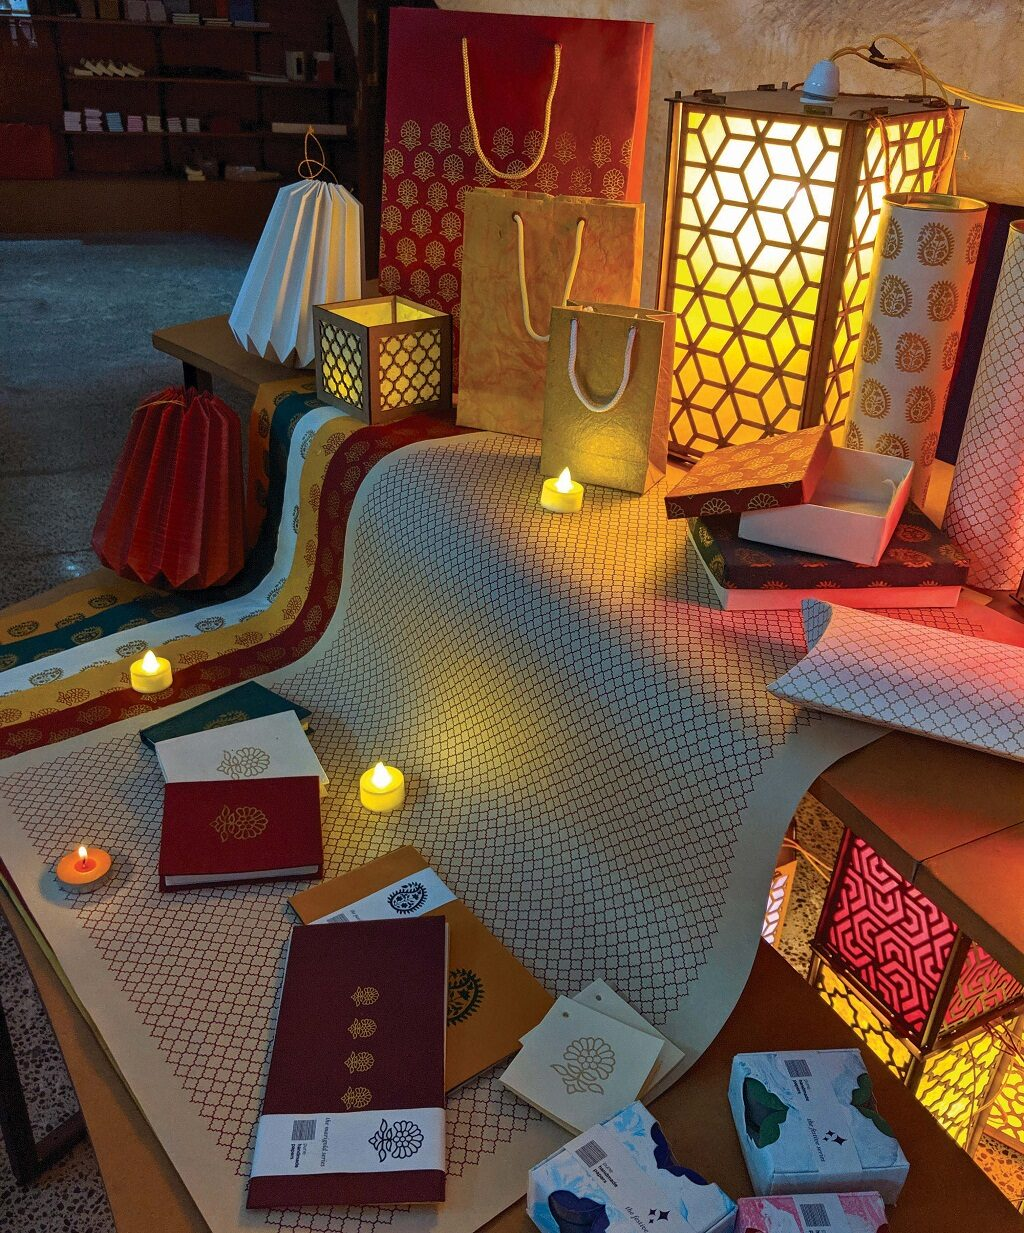 Handmade Paper Institute Pune reopens its doors with an eco-friendly Diwali exhibition